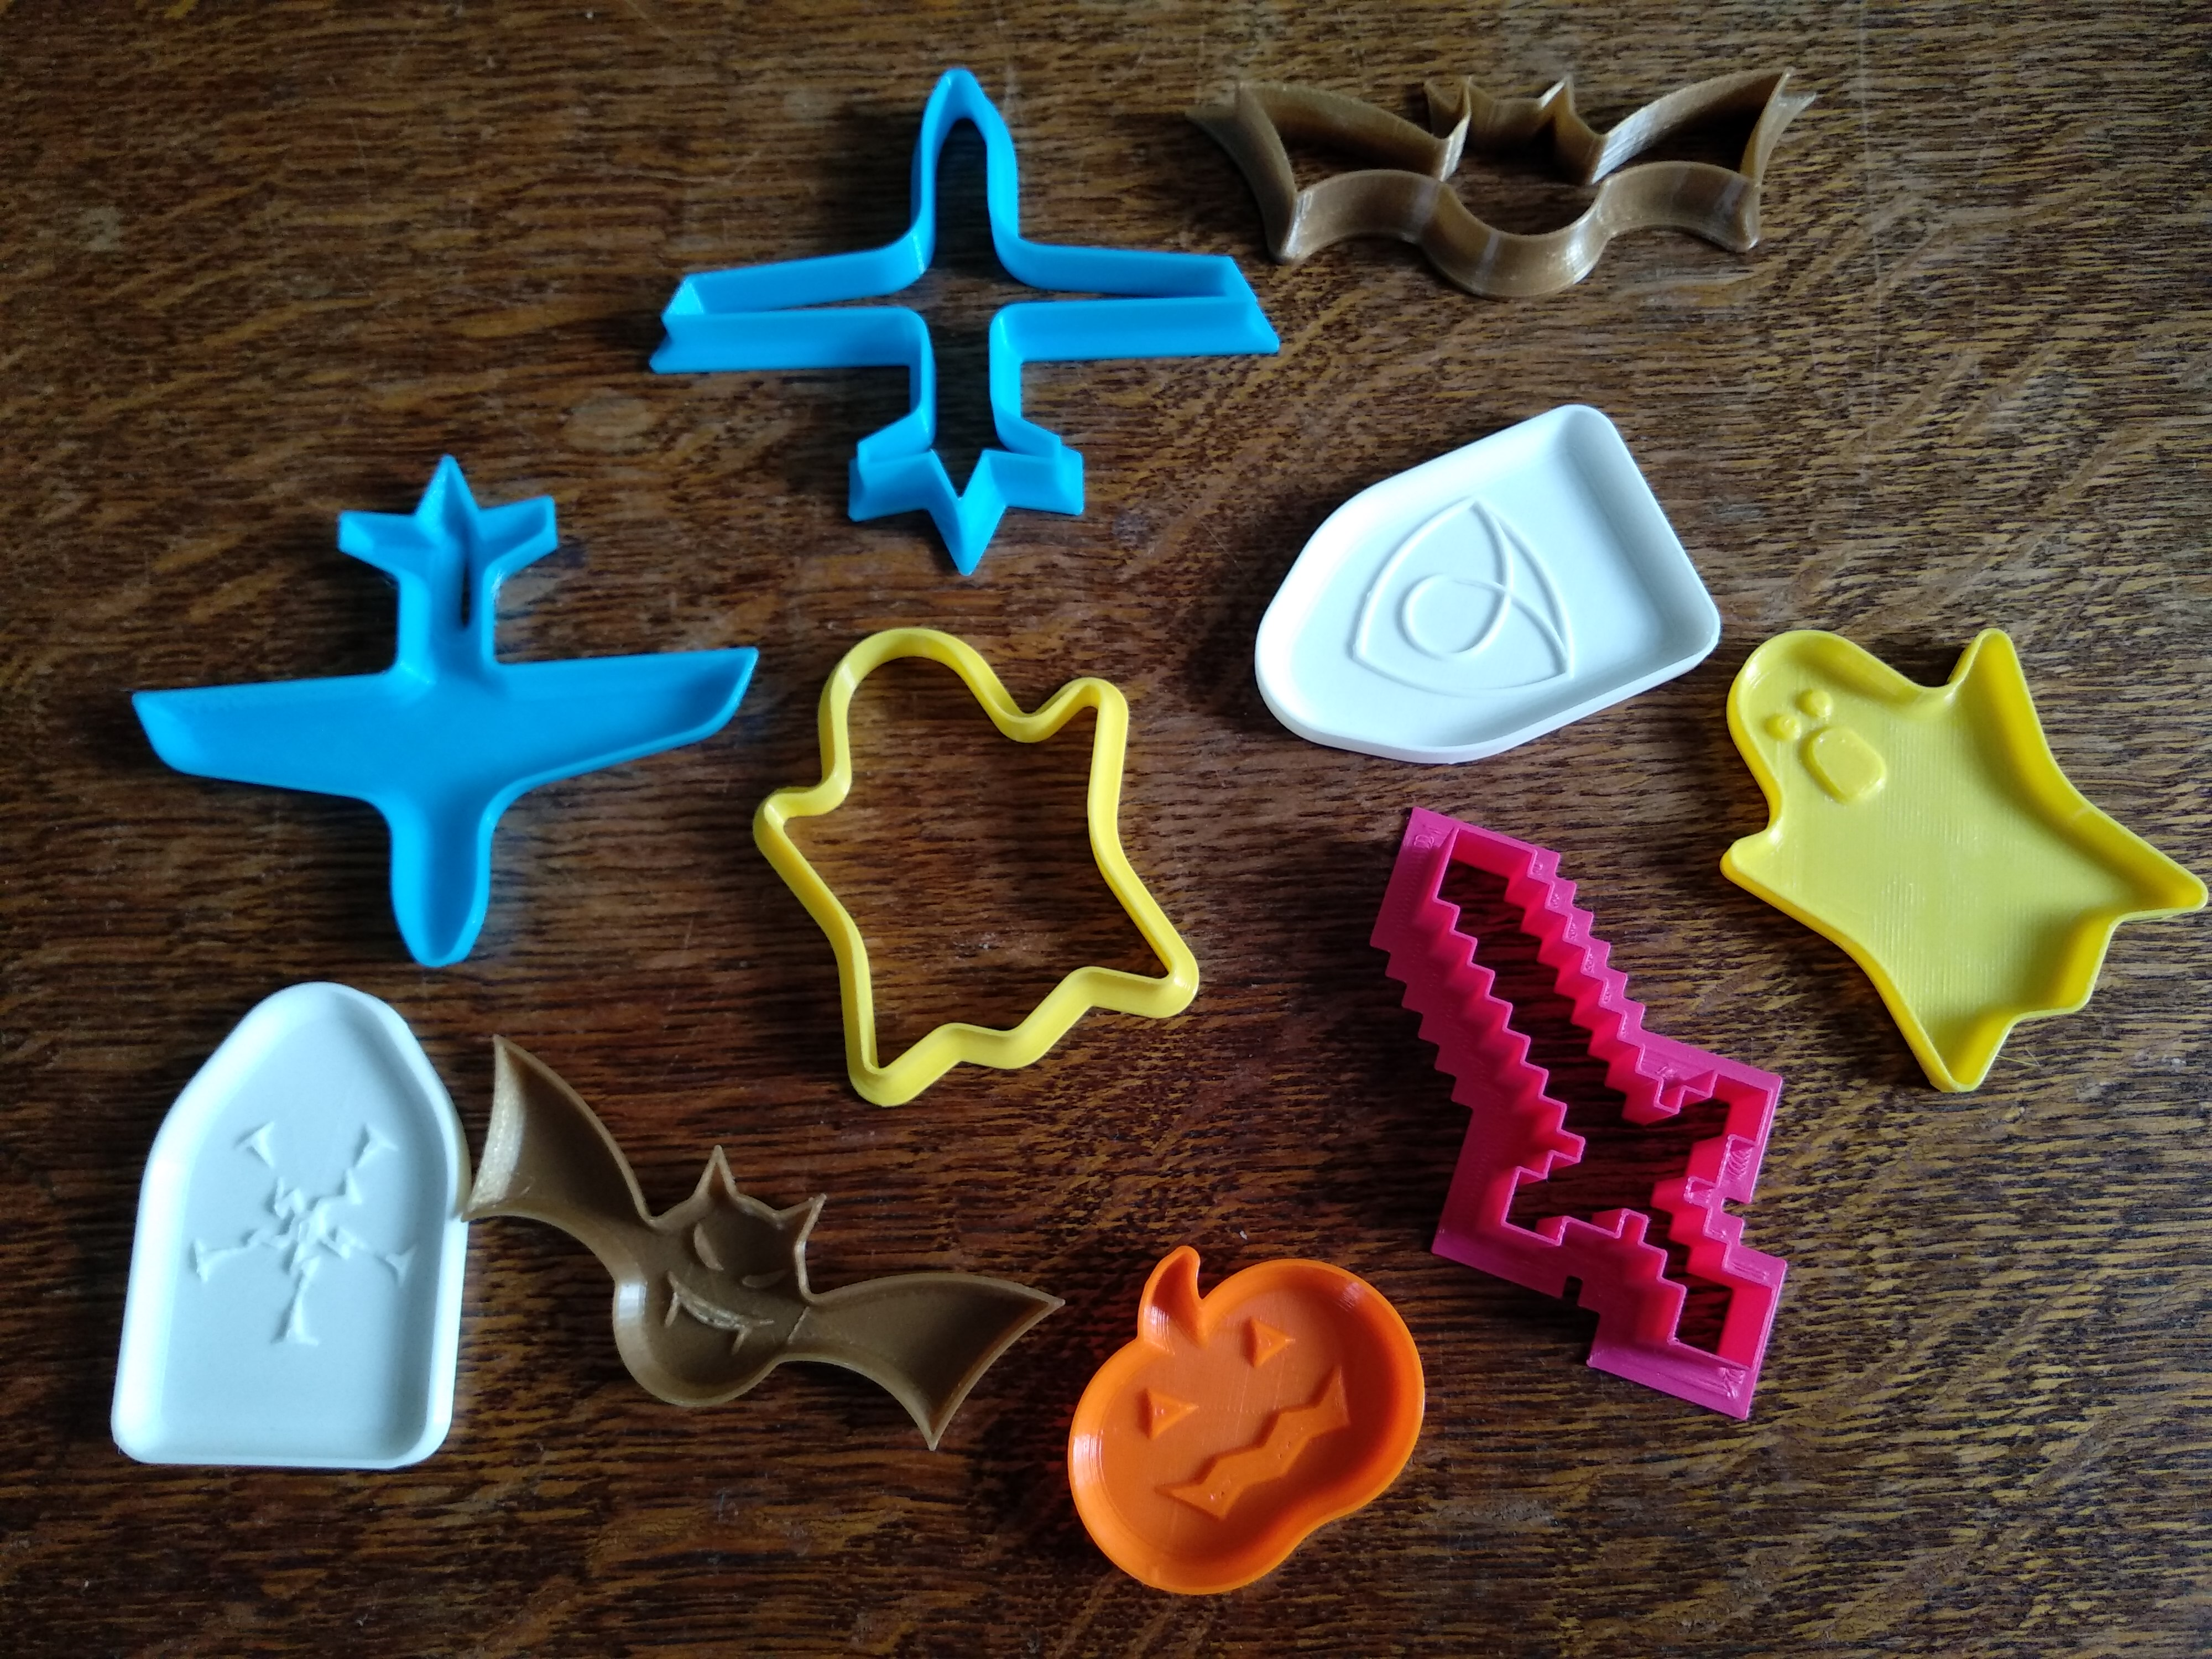 Download Free Stl File Halloween Cookie Cutters 3d Print Model Cults